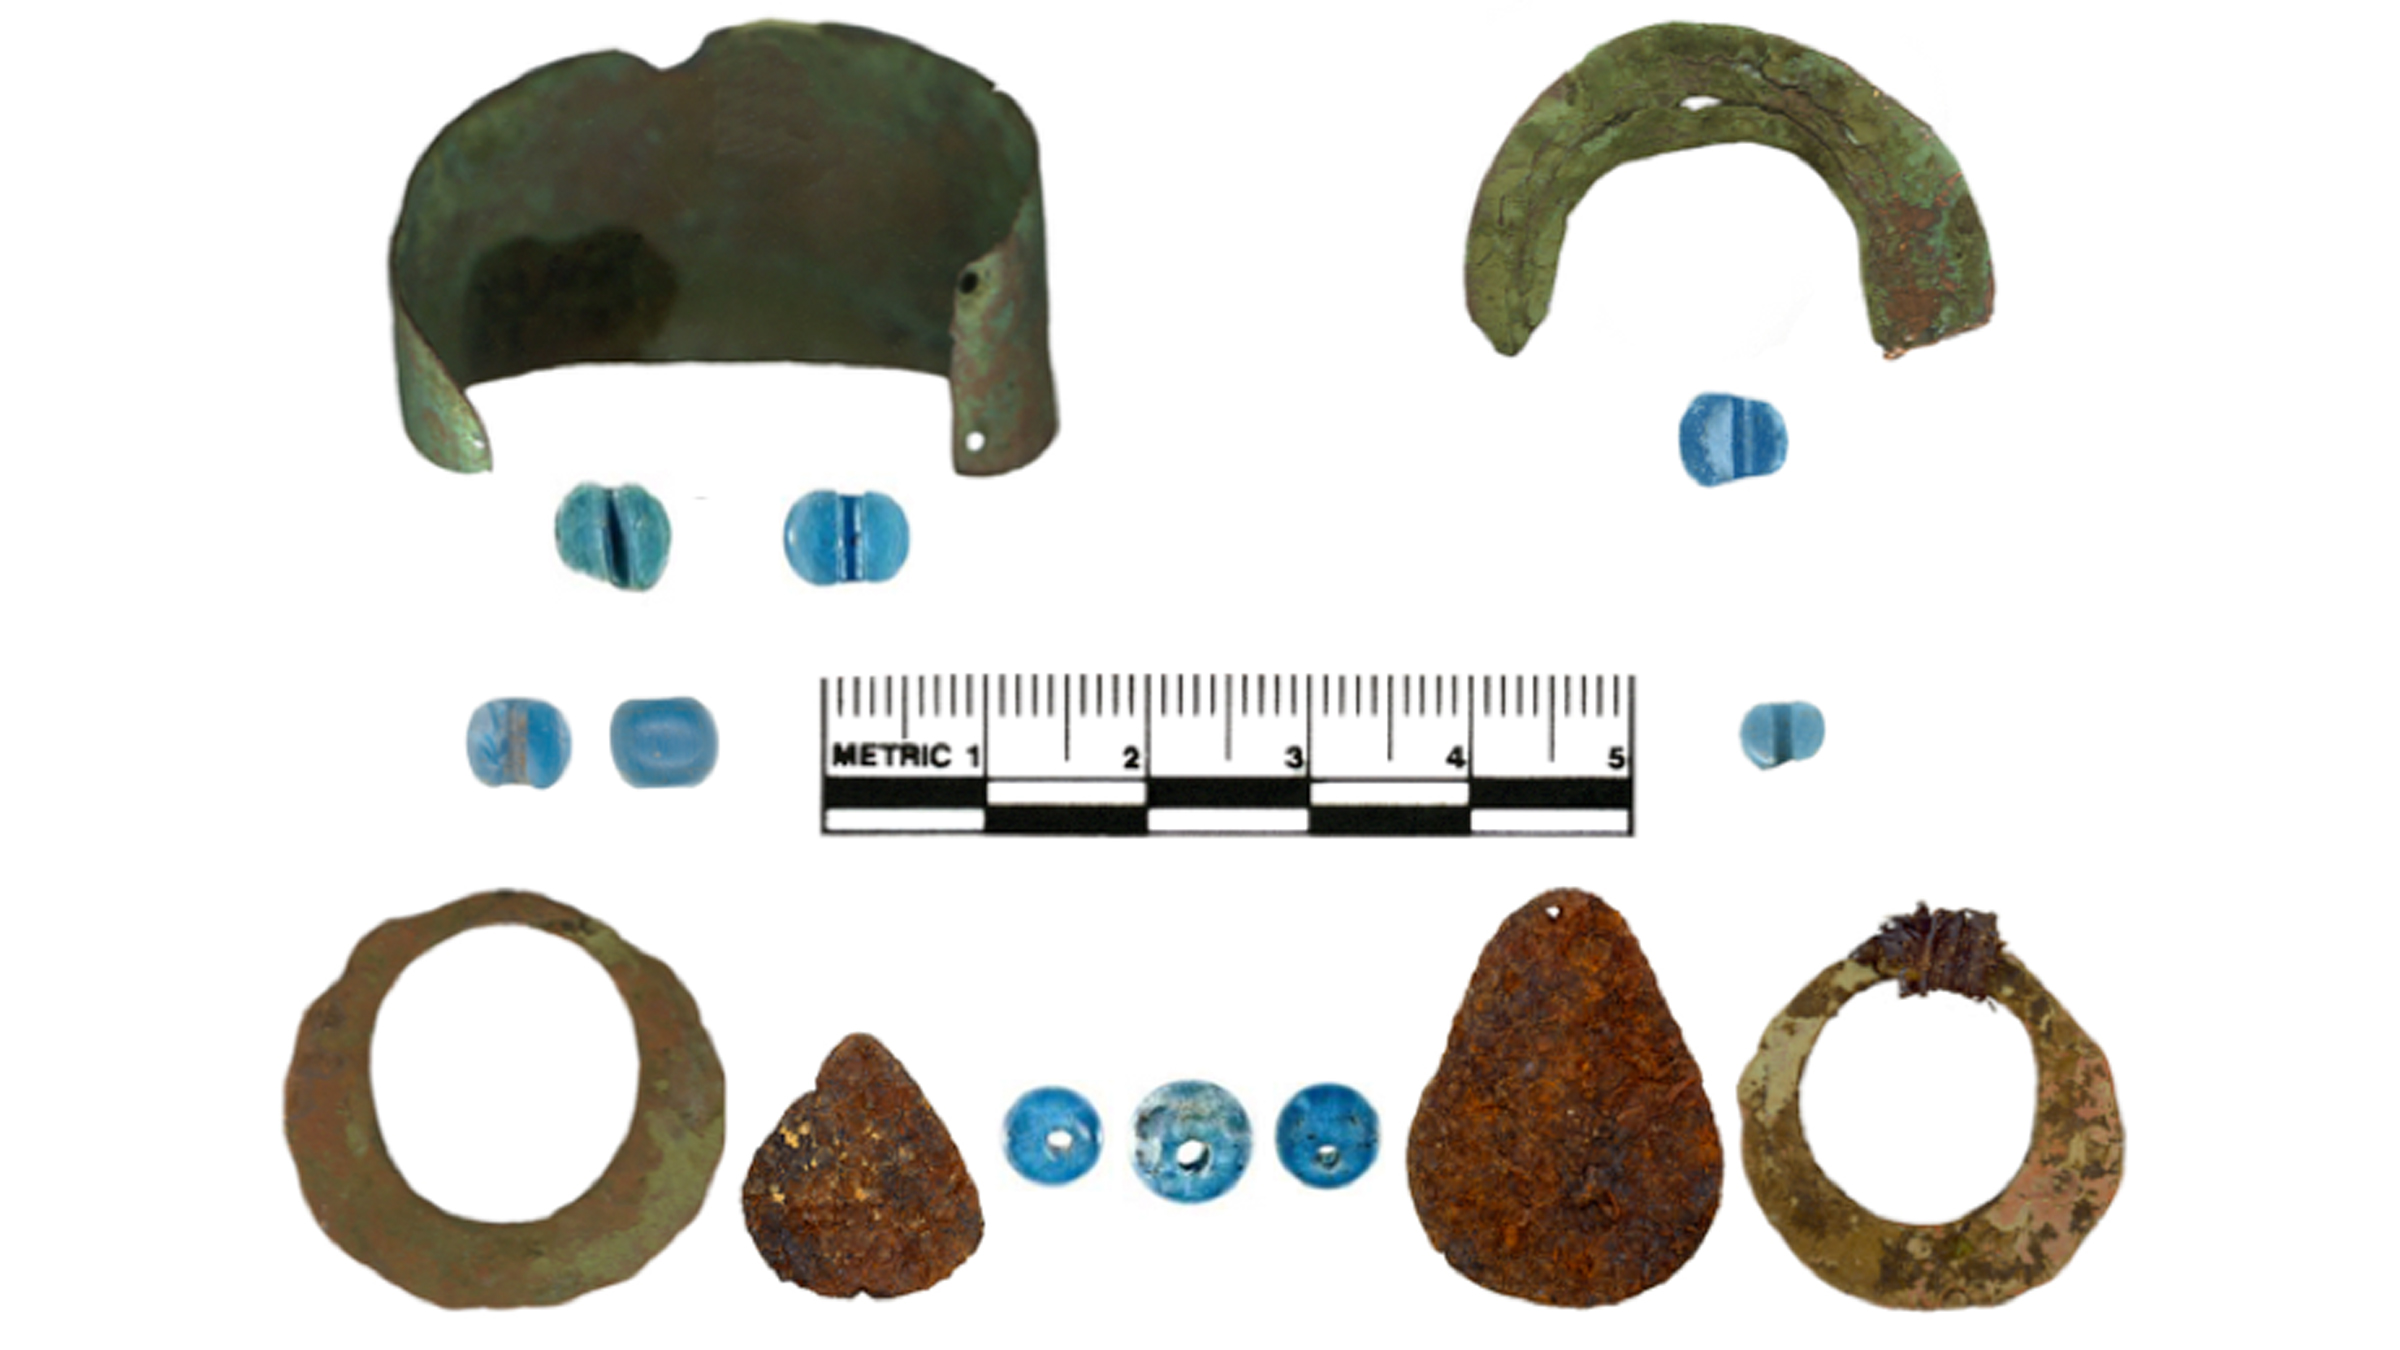 Artifacts found at Indigenous Alaskan sites include glass blue beads, copper bracelets and bangles, and iron pendants.